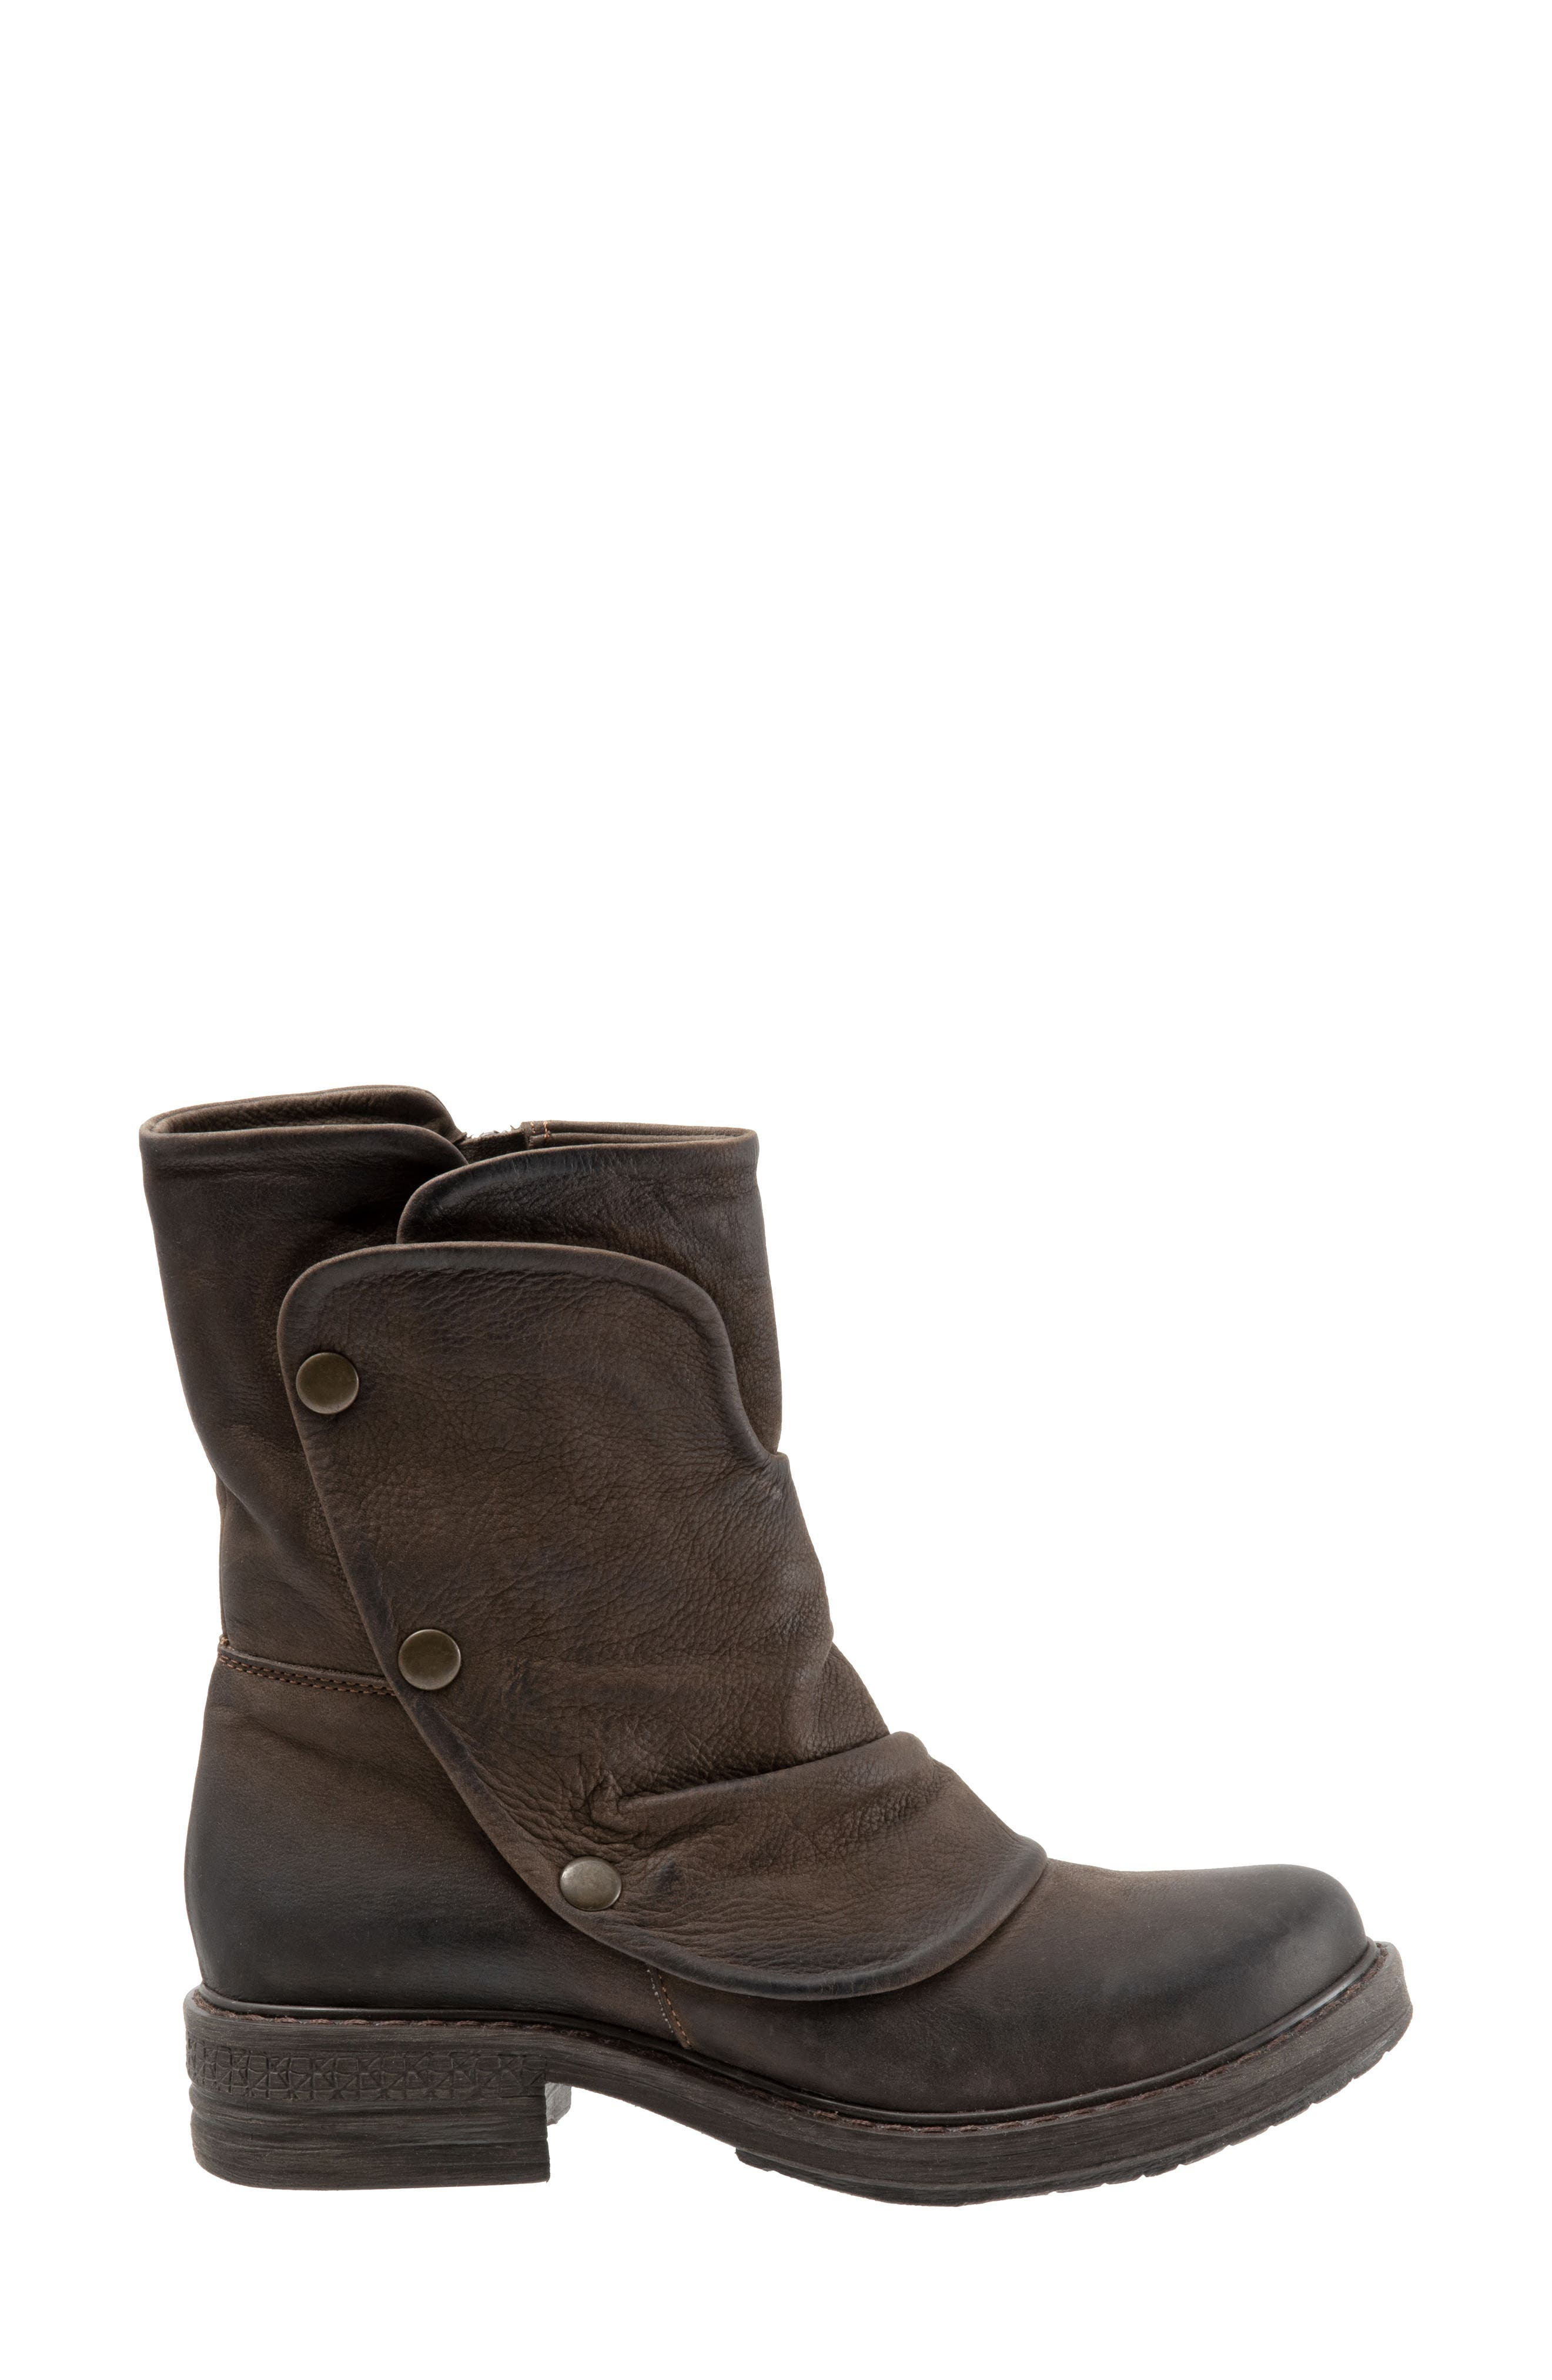 Greta Boot,                             Alternate thumbnail 3, color,                             BROWN NUBUCK